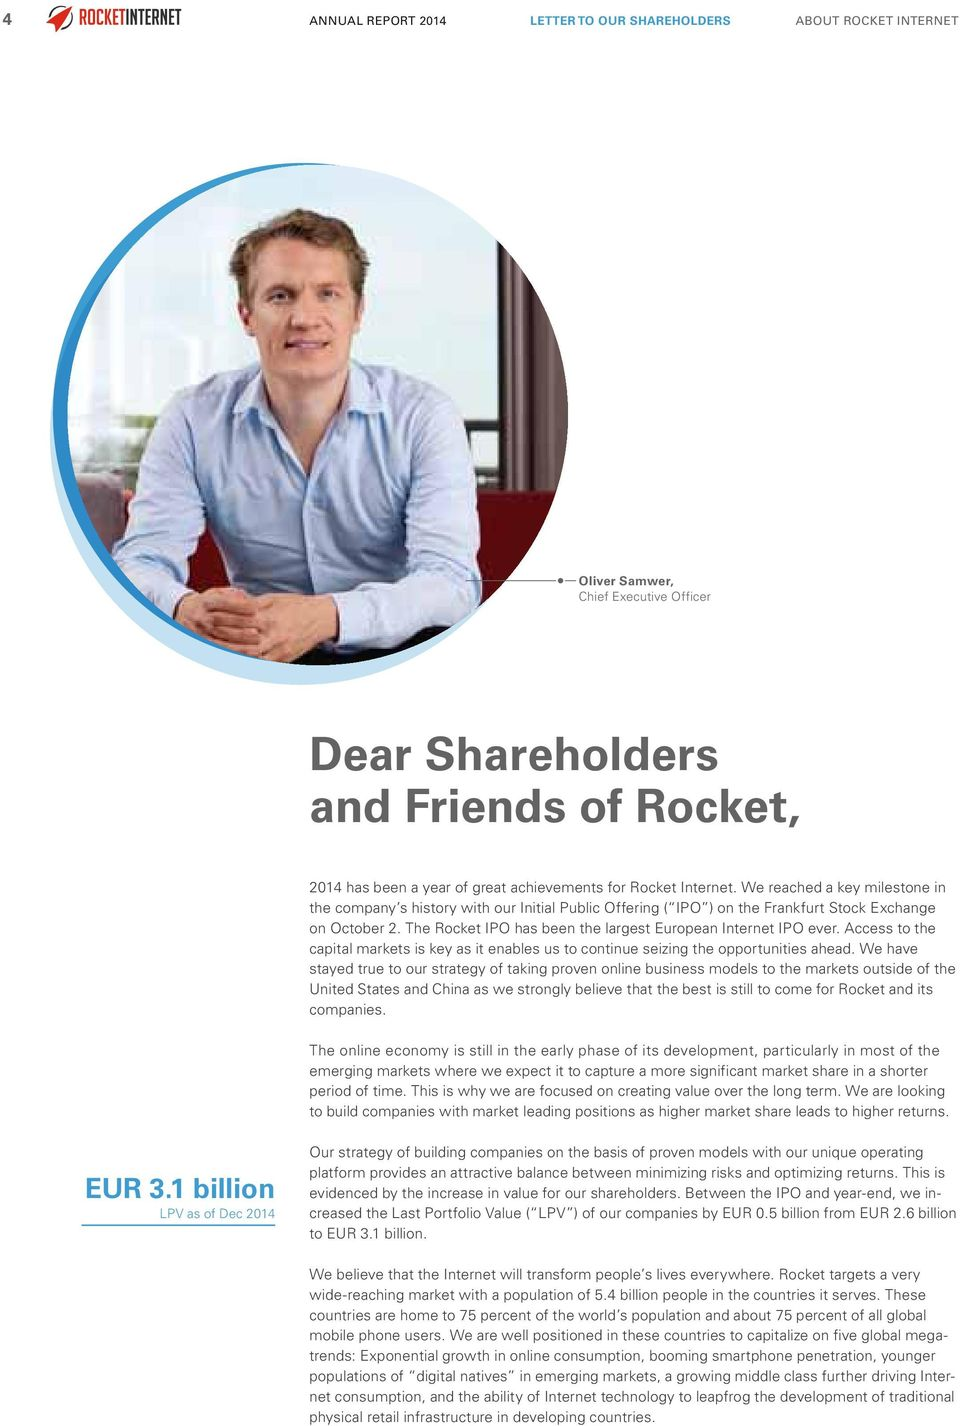 The Rocket IPO has been the largest European Internet IPO ever. Access to the capital markets is key as it enables us to continue seizing the opportunities ahead.